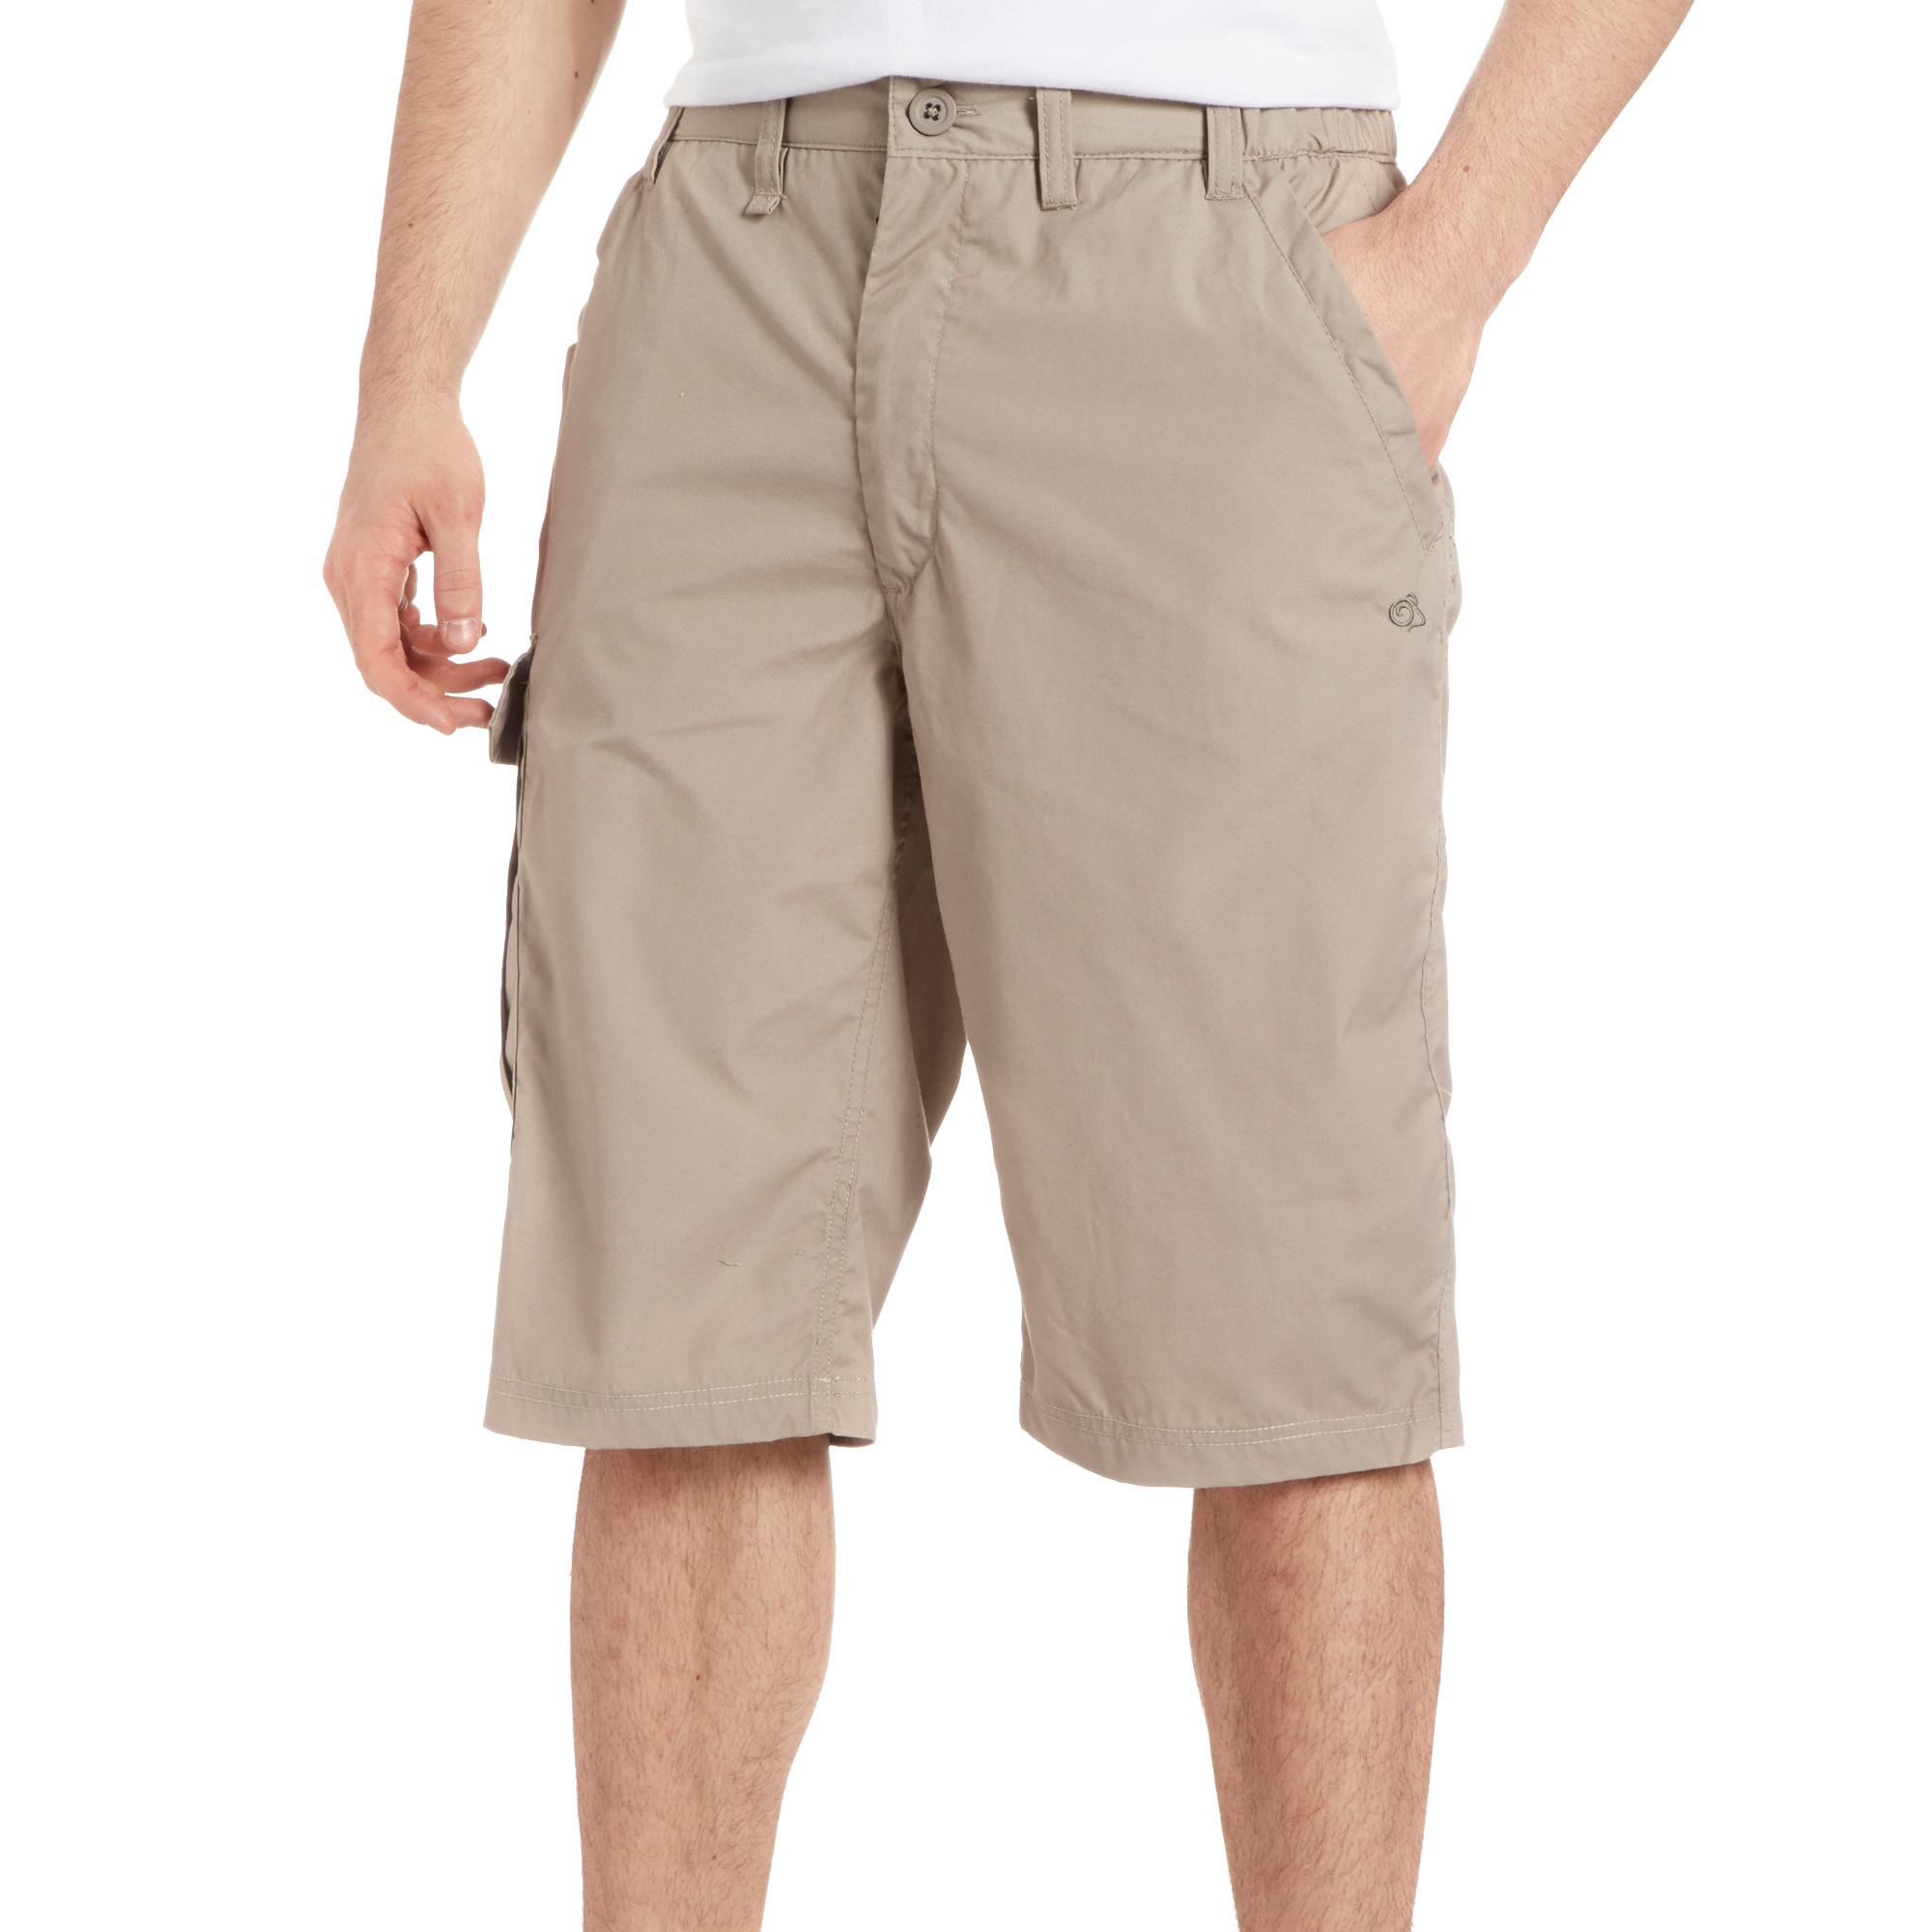 Shop a huge selection of men's shorts at Dickies. From durable work shorts to stylish men's cargo shorts, you're sure to find the shorts to fit your need. Williamson-Dickie Mfg. Co.